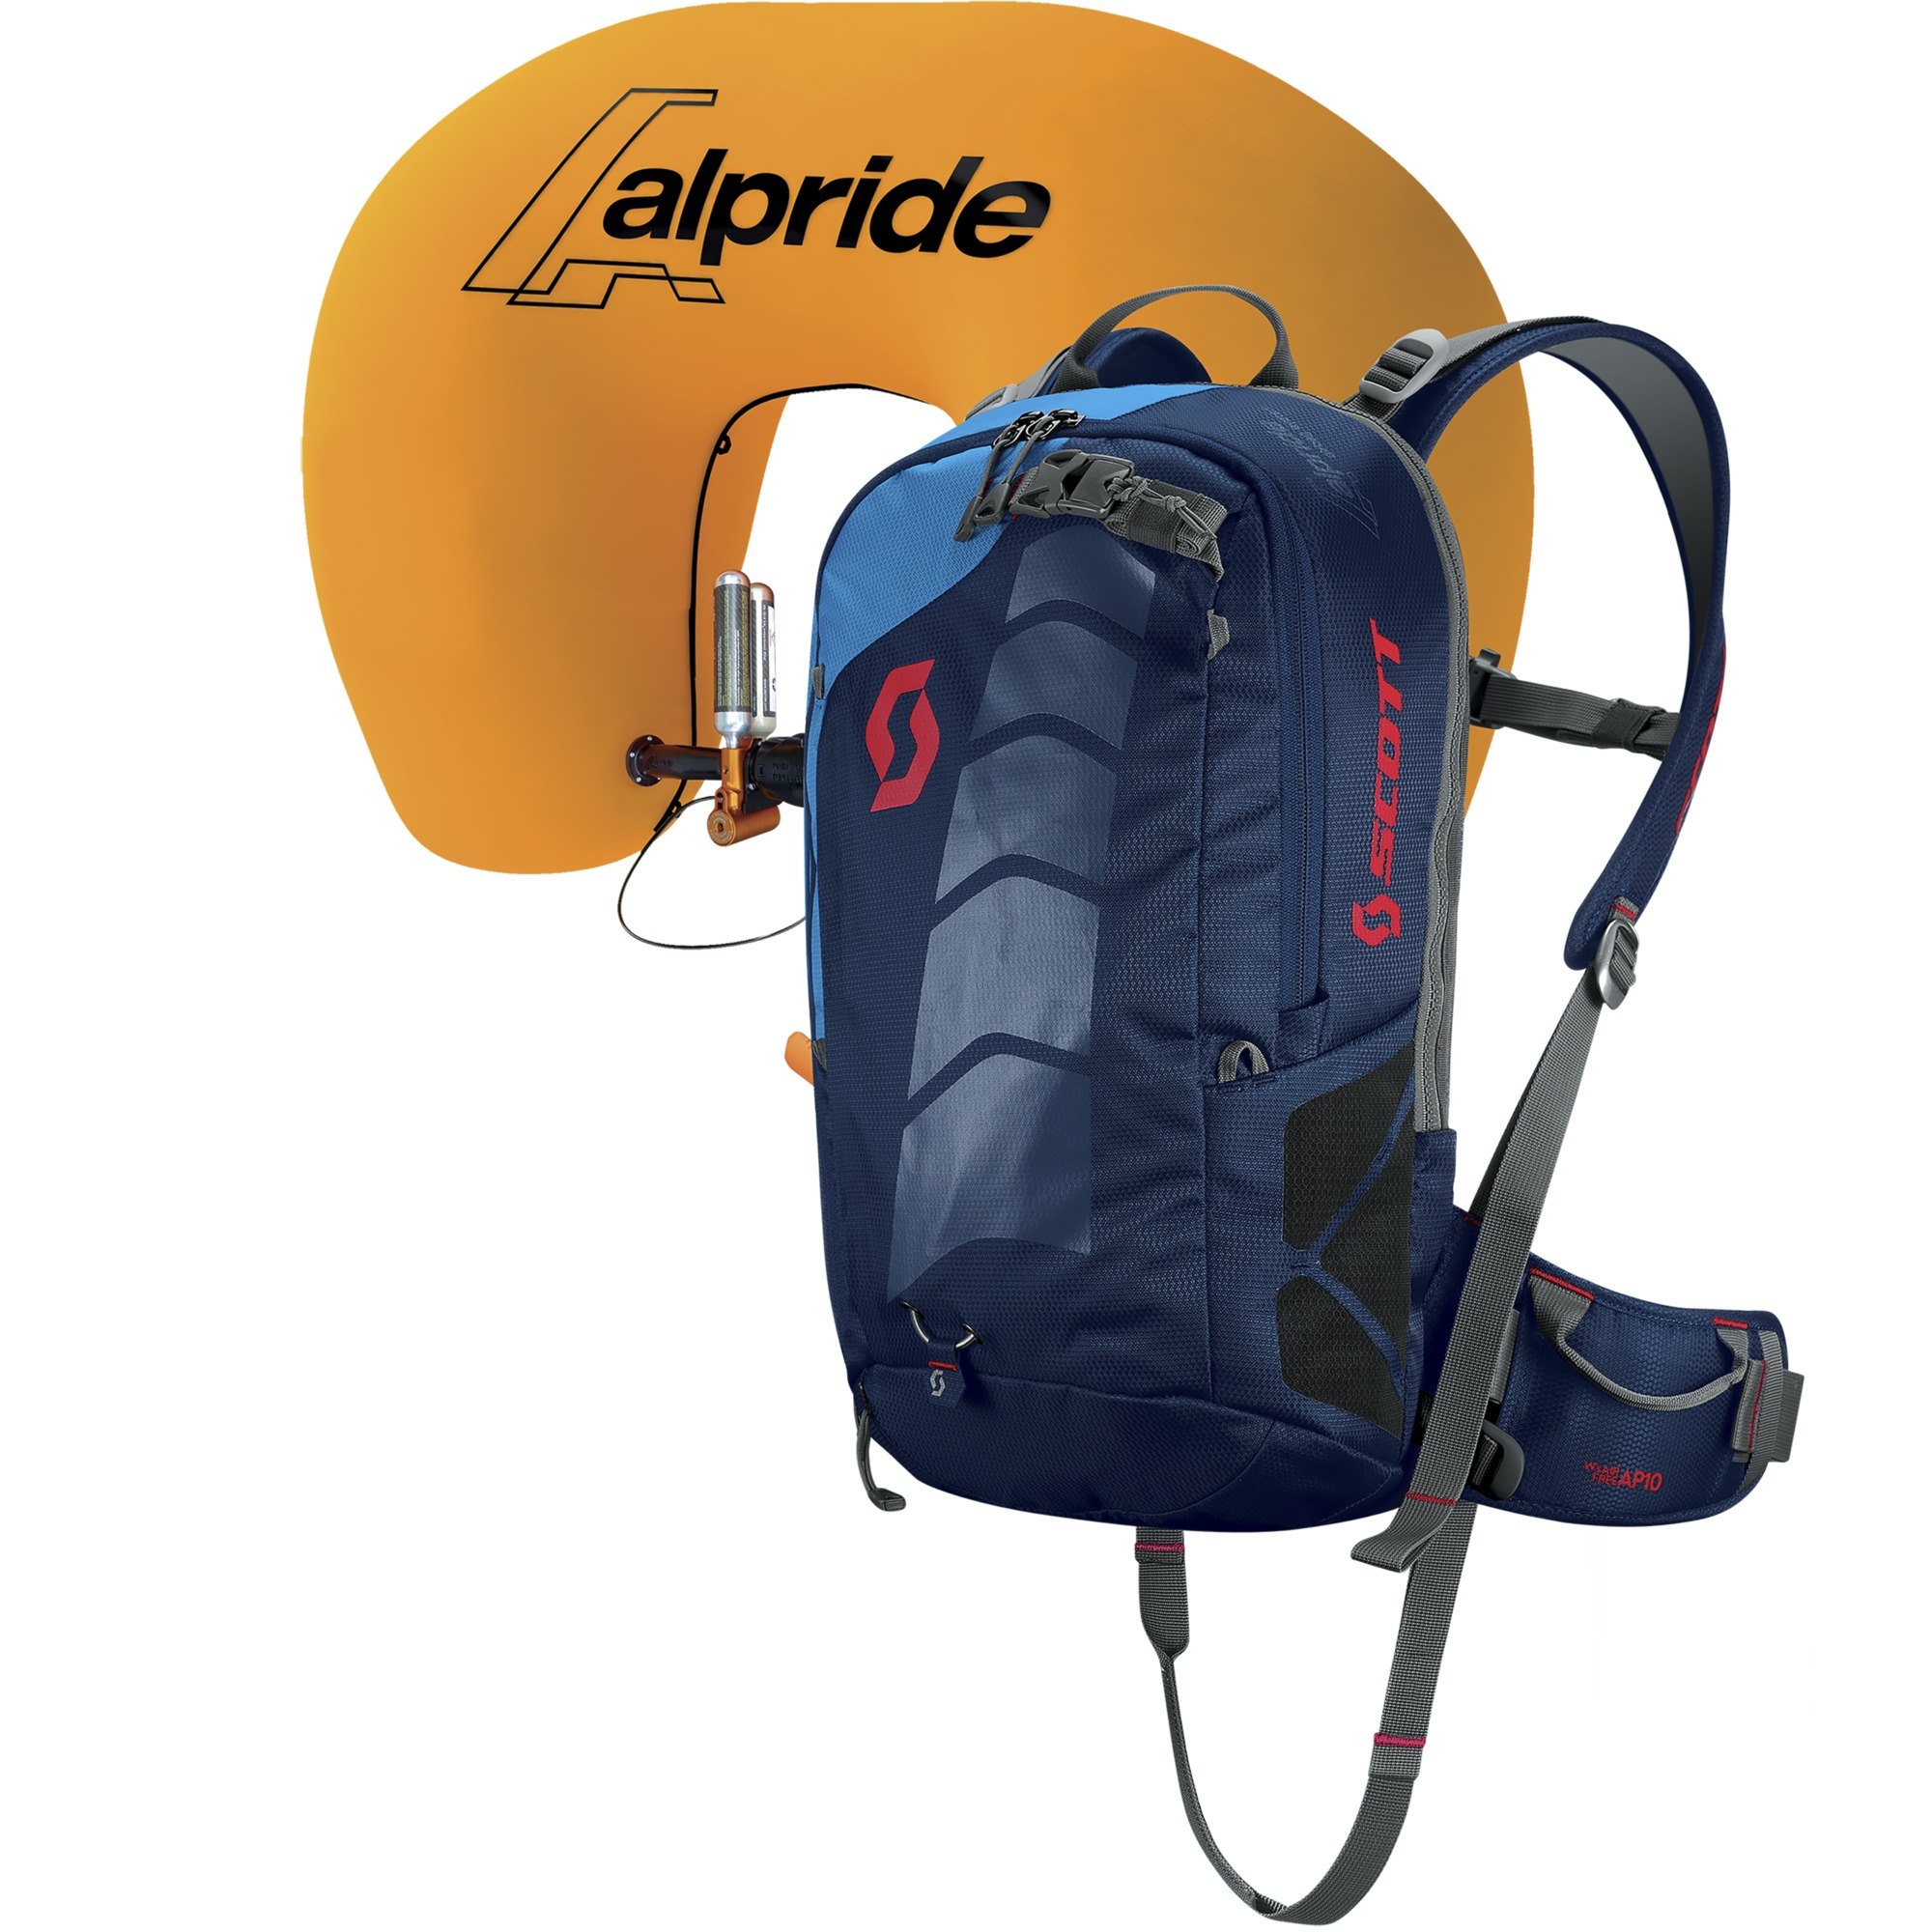 Air Free AP 10 Kit Women's Pack